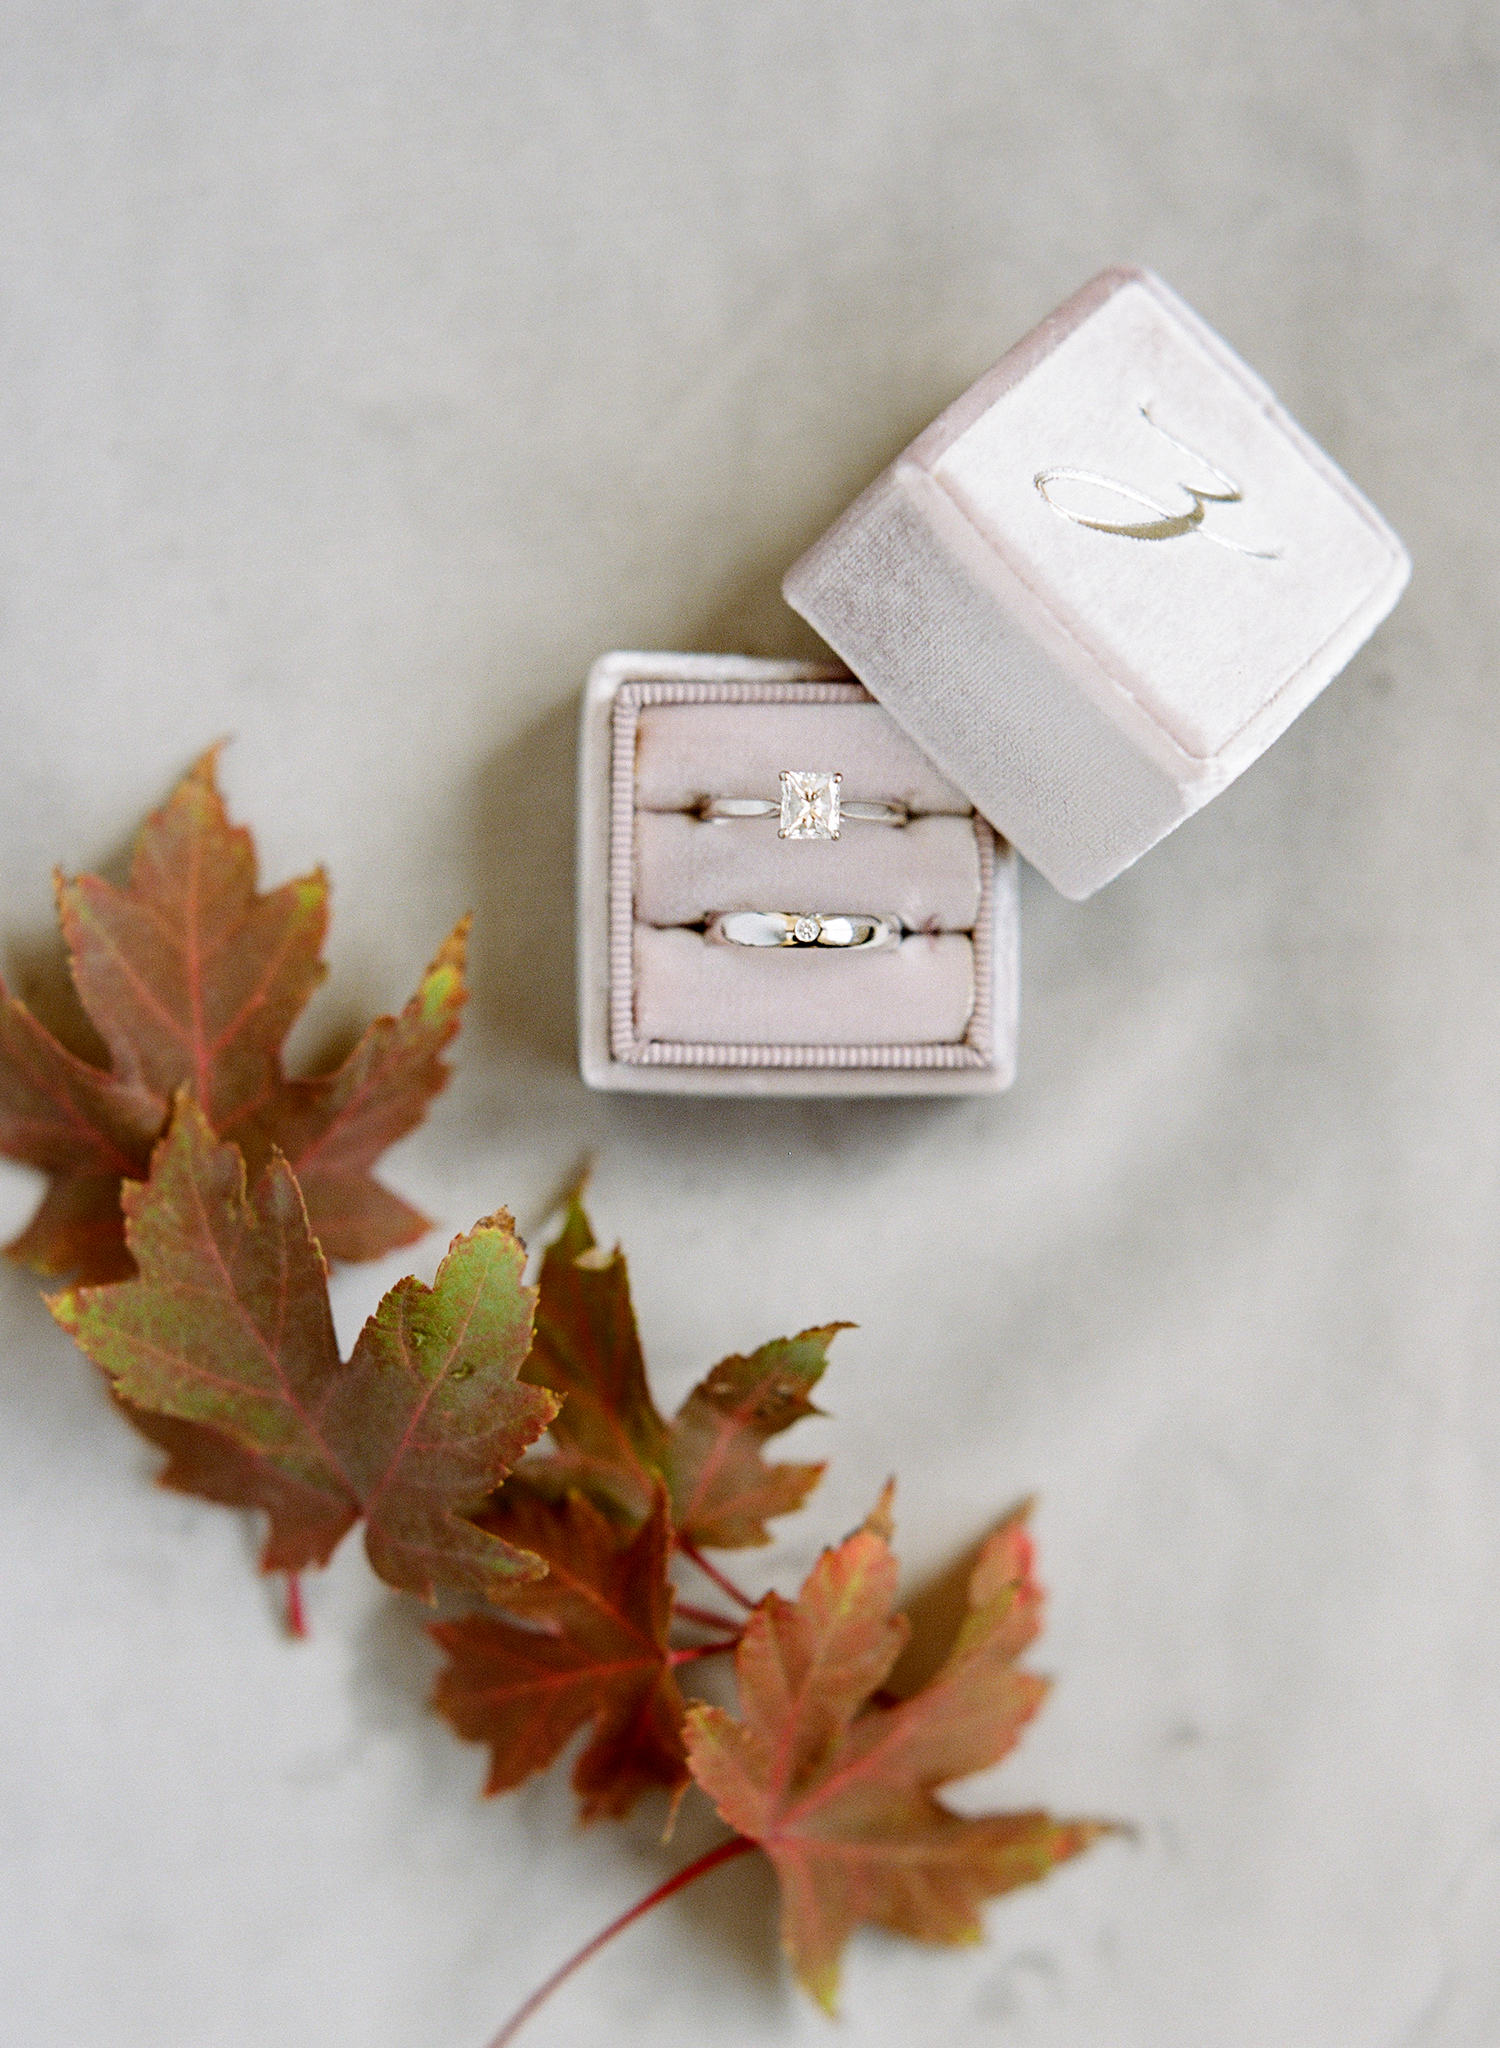 ivana nevin rings and leaves